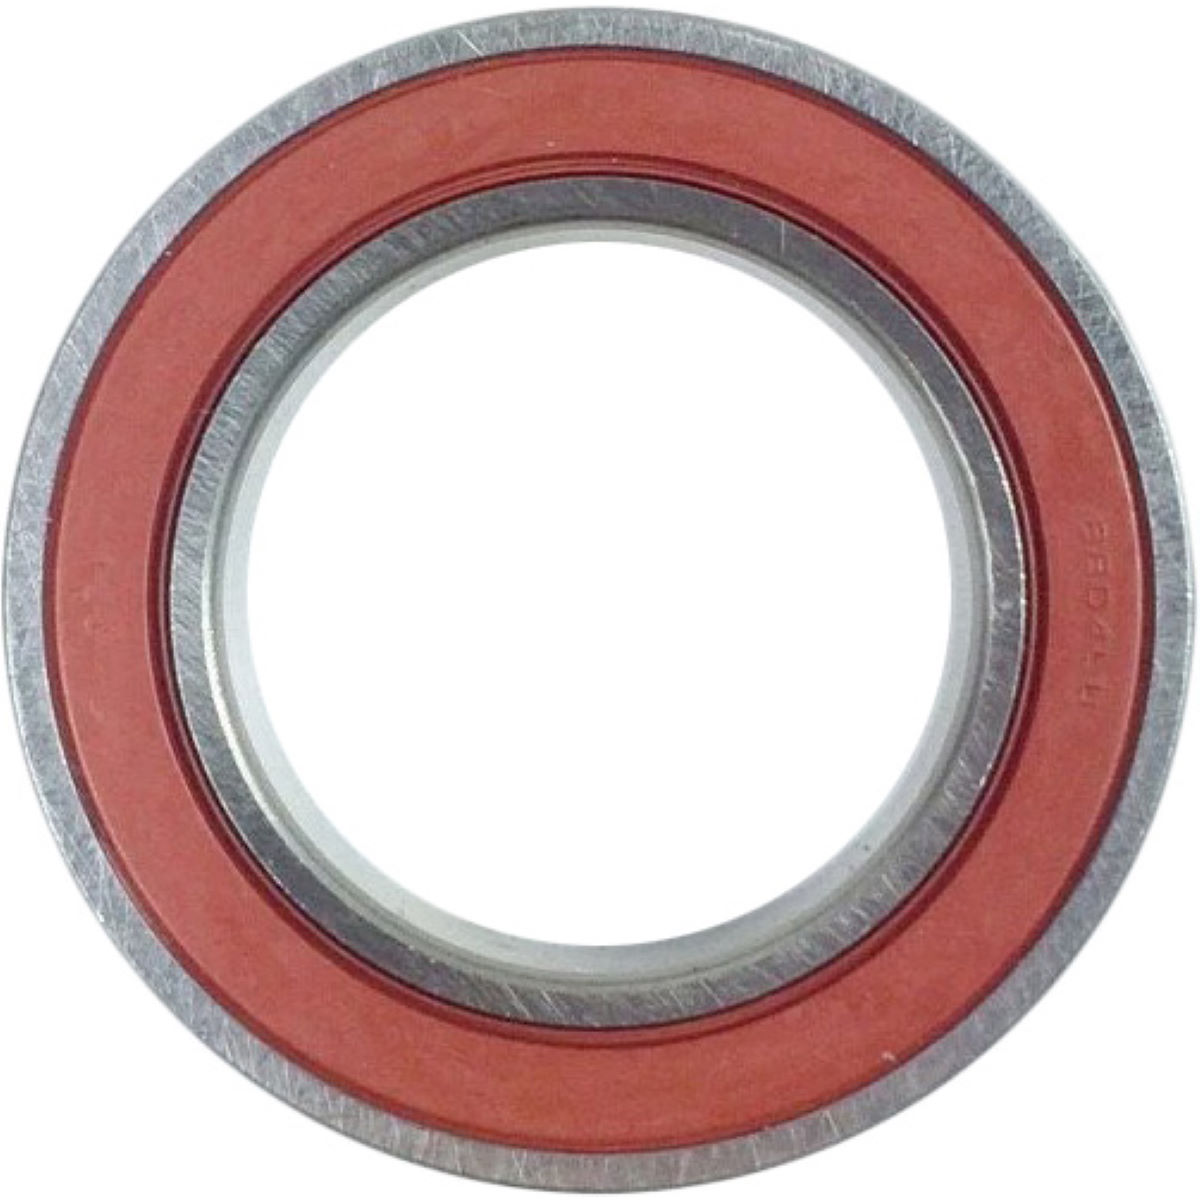 e.thirteen e.thirteen Hub Body Bearings   Wheel Spares